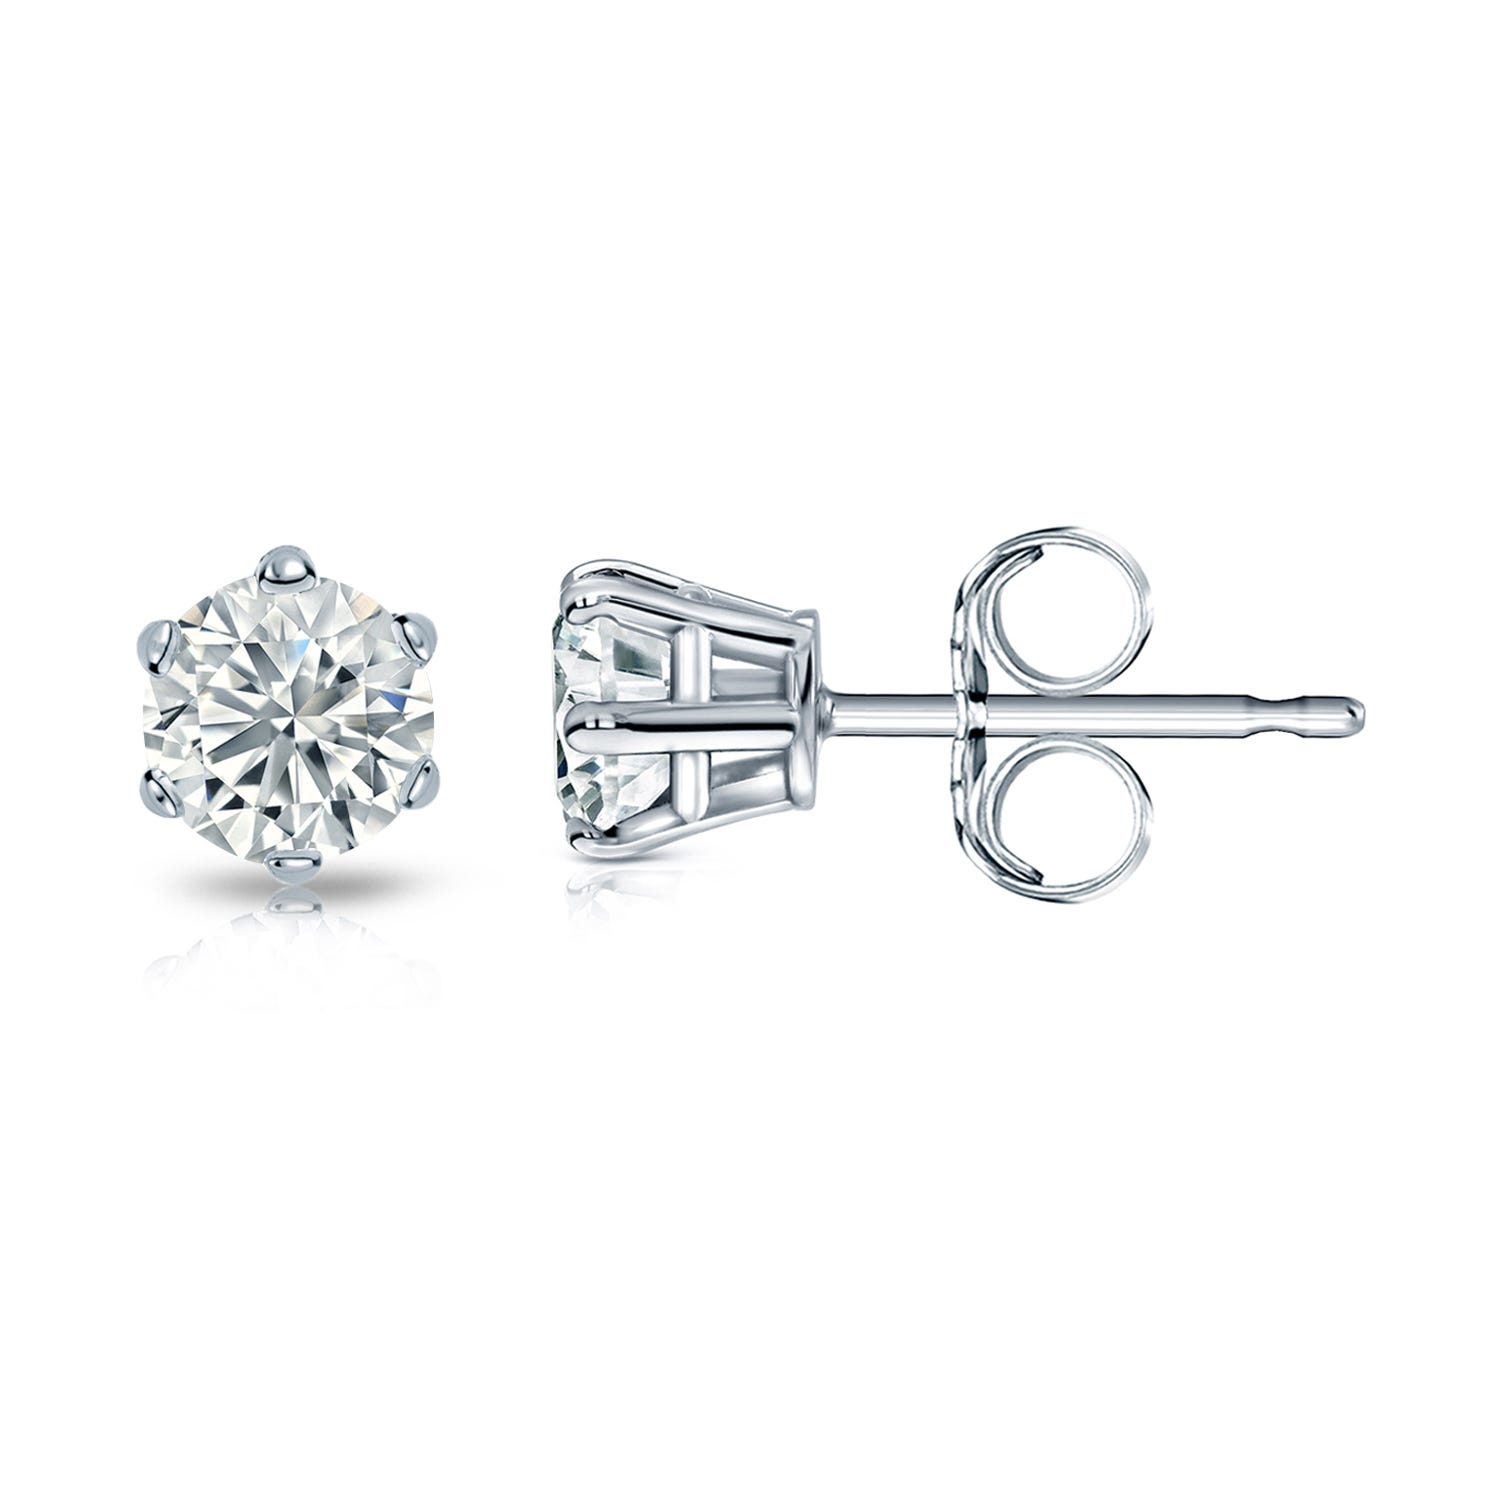 Round Diamond 3/8ctw. (IJ-I1) Solitaire Stud 6-Prong Earrings in 14K White Gold